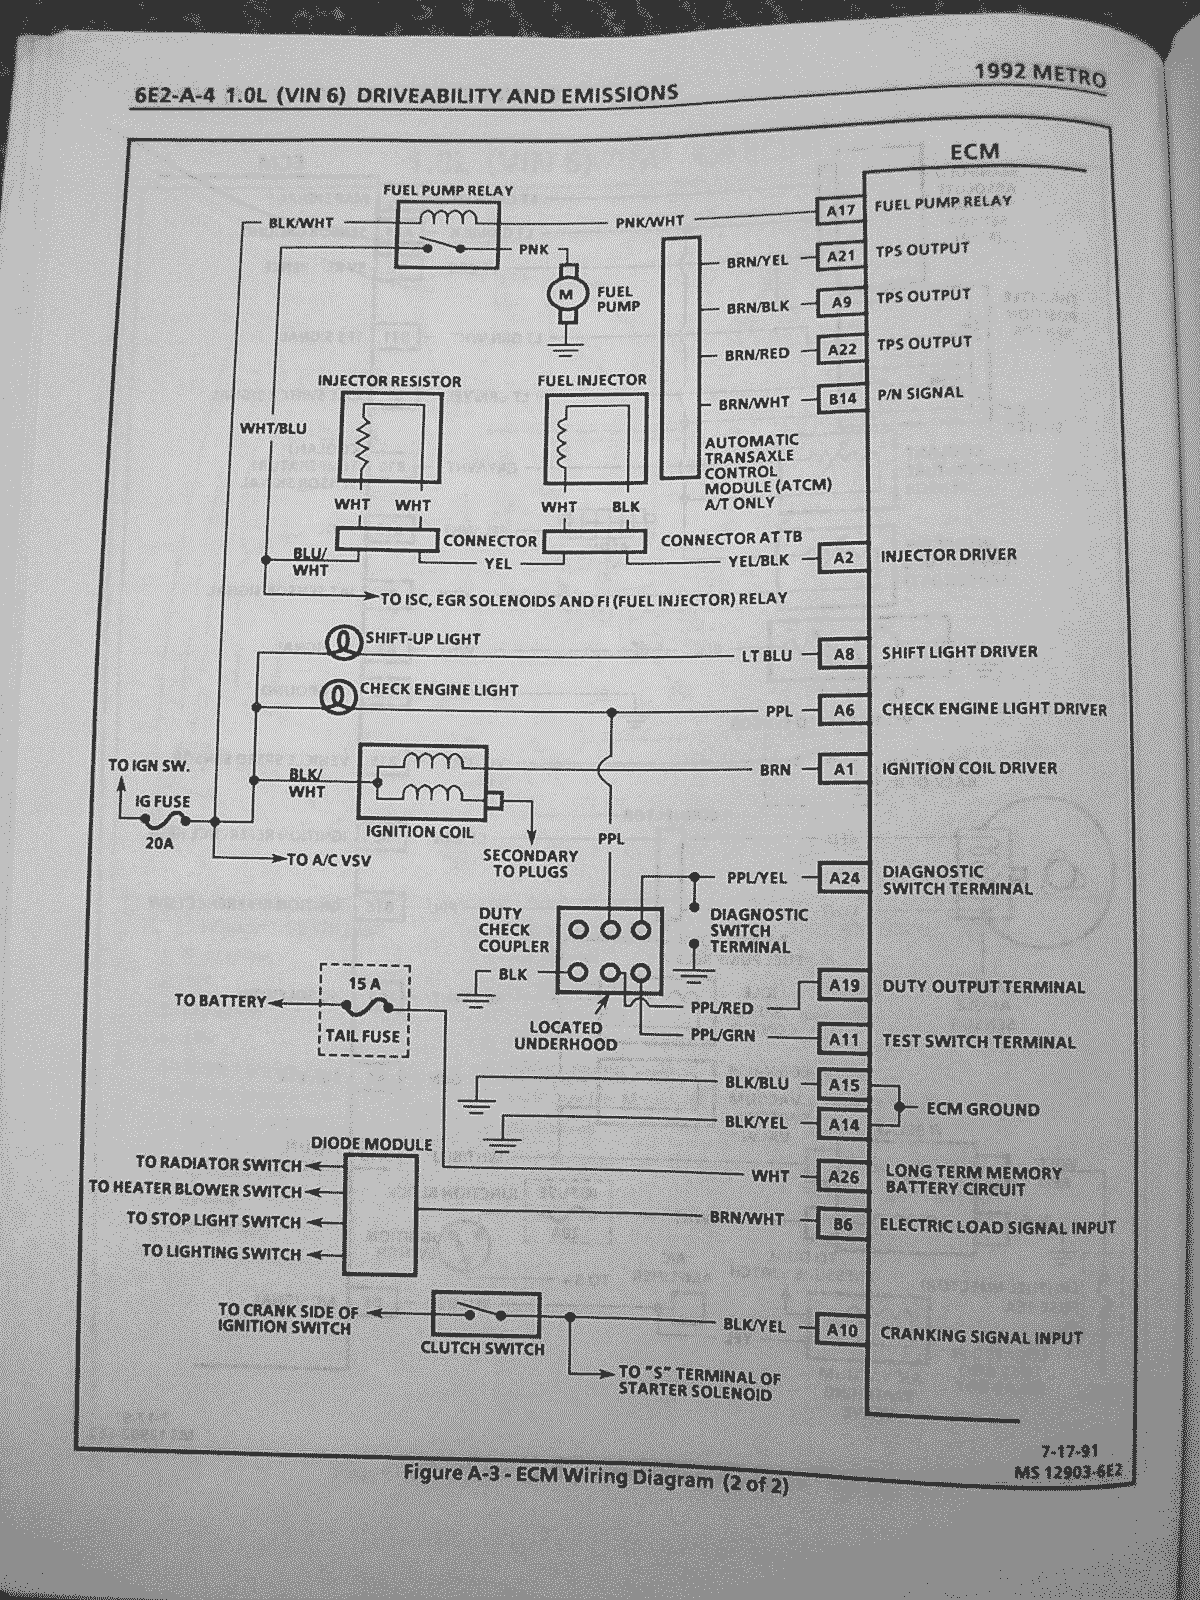 6e2 a 4 geo metro and suzuki swift wiring diagrams metroxfi com suzuki wiring diagram at reclaimingppi.co